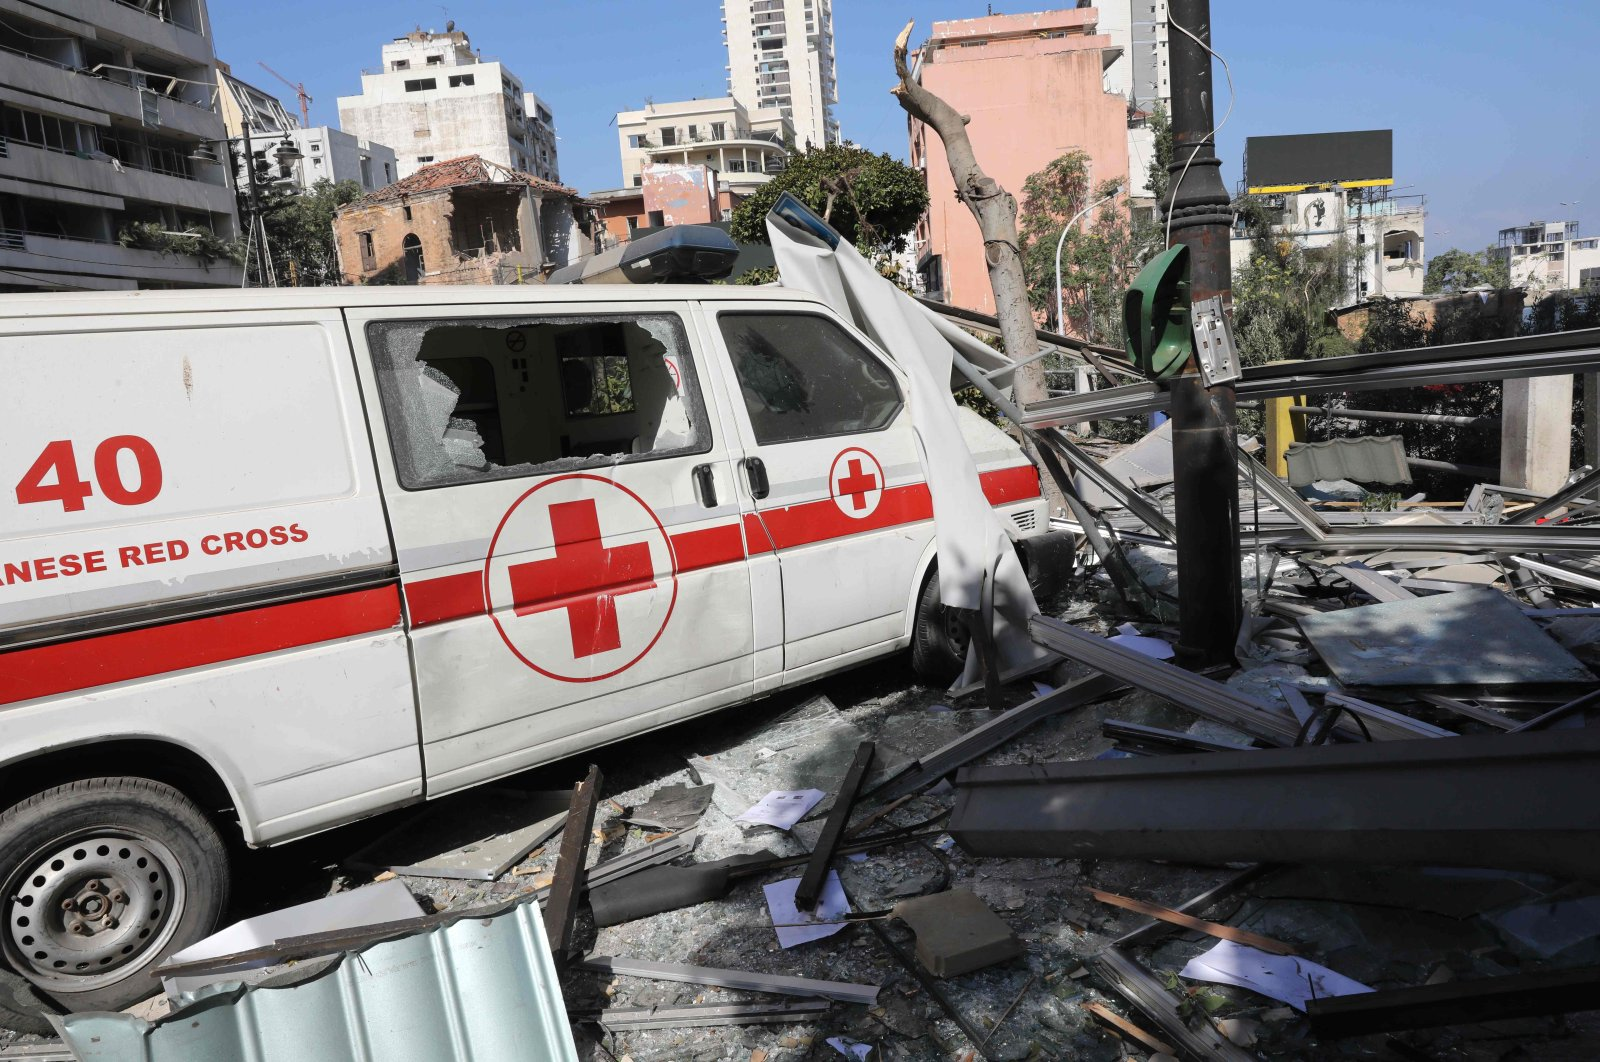 An emergency command vehicle of the Lebanese Red Cross is pictured in the aftermath of yesterday's blast that tore through Lebanon's capital and resulted from the ignition of a huge depot of ammonium nitrate at Beirut's port, on Aug. 5, 2020. (AFP Photo)